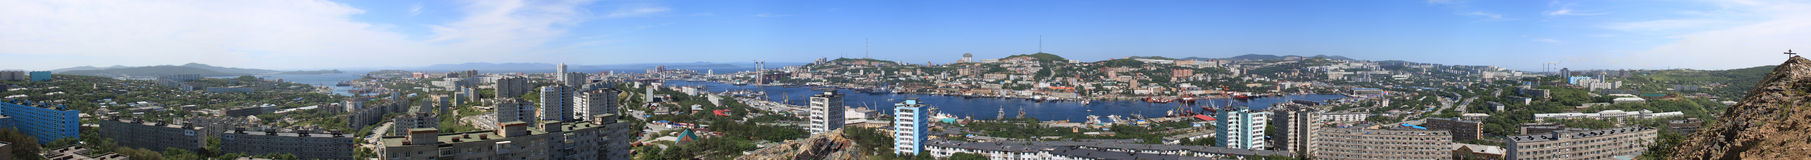 Vladivostok. Capital Far East region Russian Federation royalty free stock photo